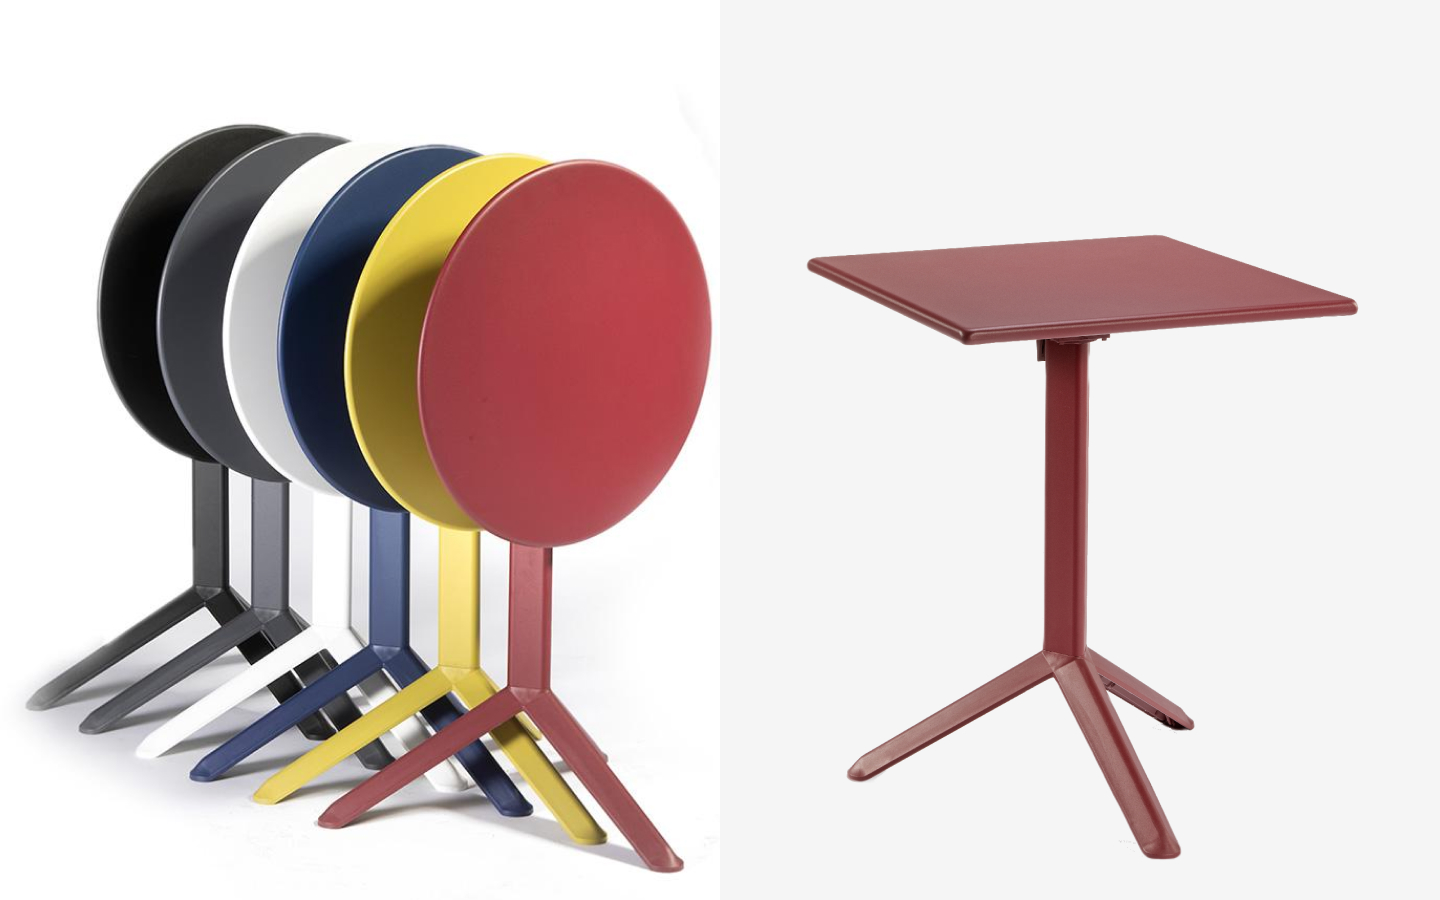 Square and round metal bistro tables with foldable top